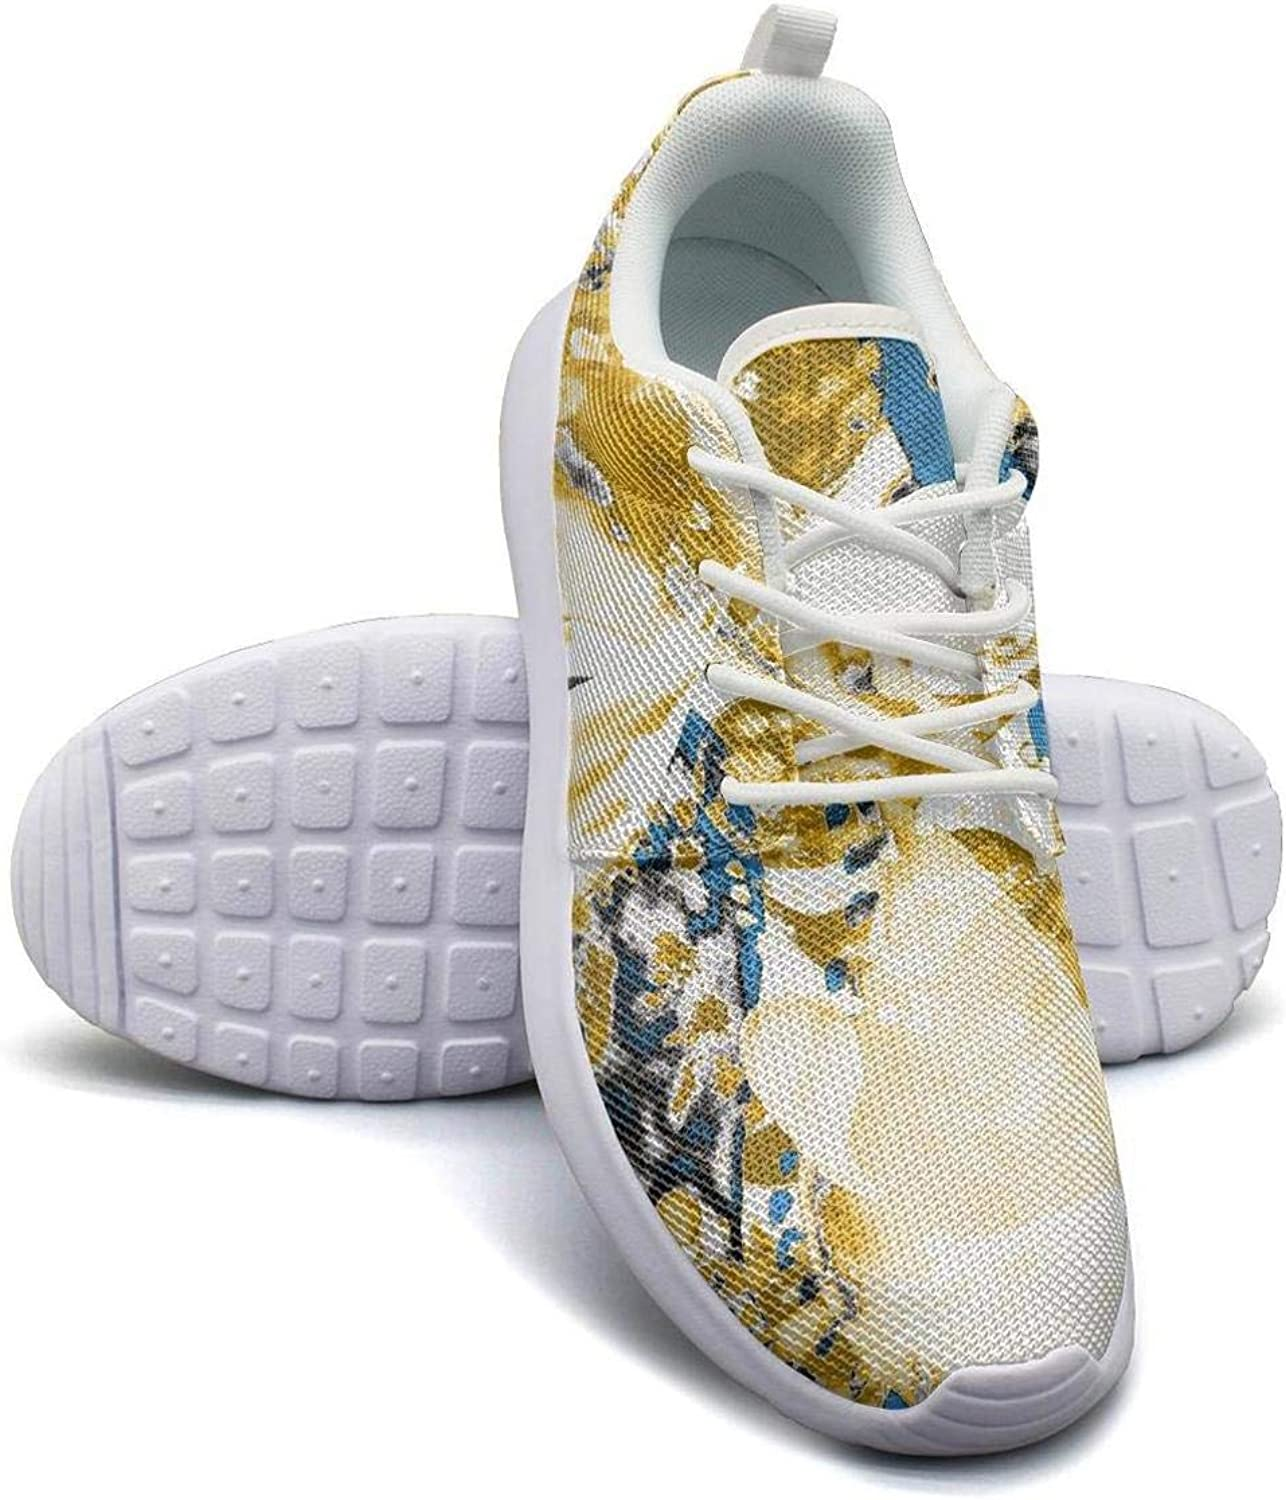 CHALi99 Fashion Women's Lightweight Mesh shoes Tropical Floral Hawaiian Vivid Tropic Sneakers Outdoor Lace-Up